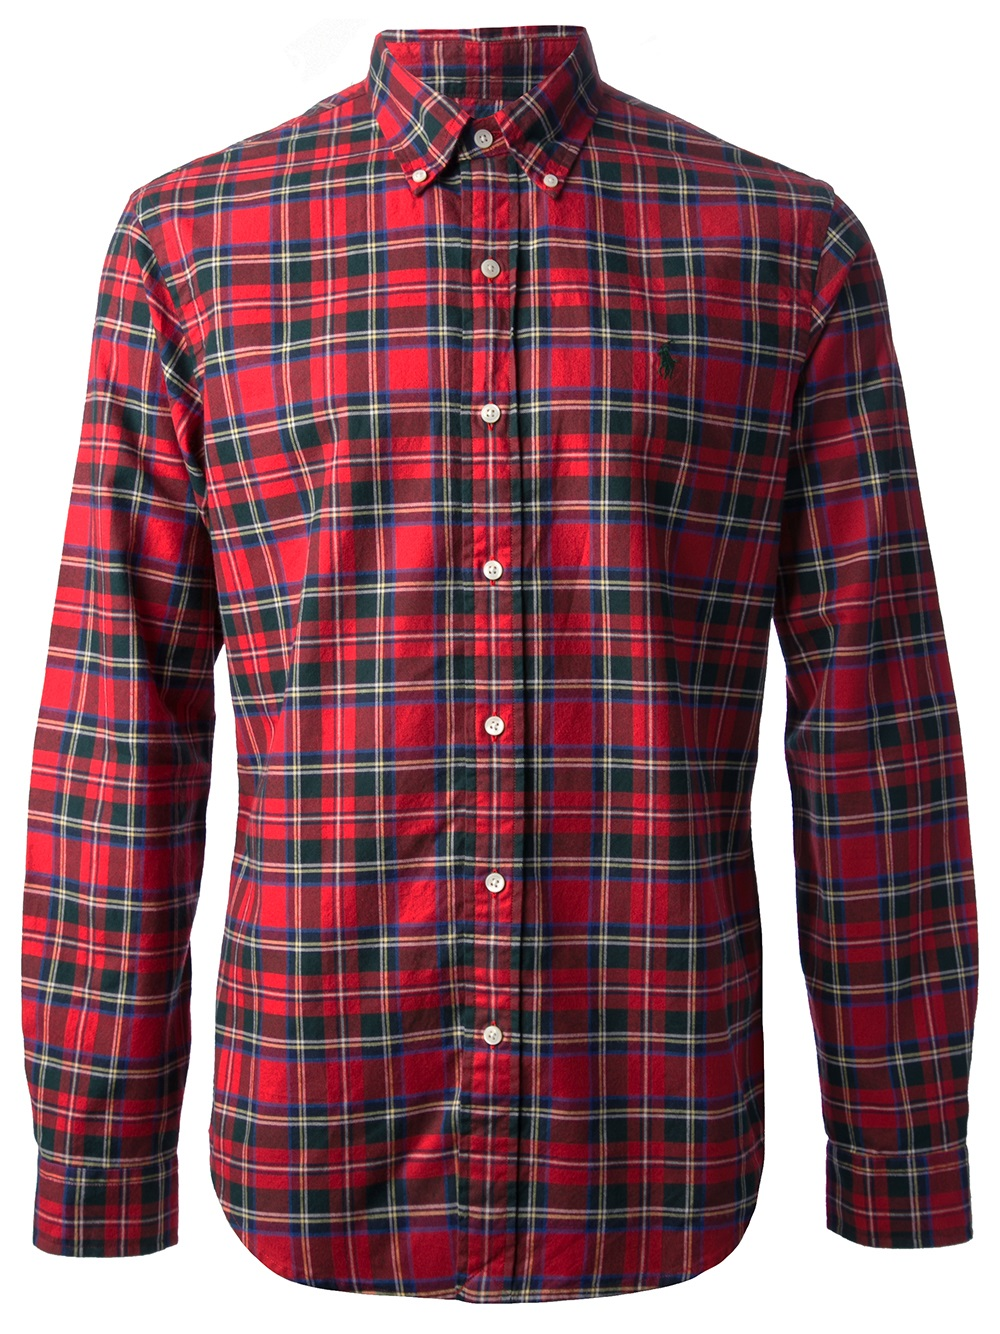 Polo ralph lauren plaid button down shirt in red for men for Red and white plaid shirt mens